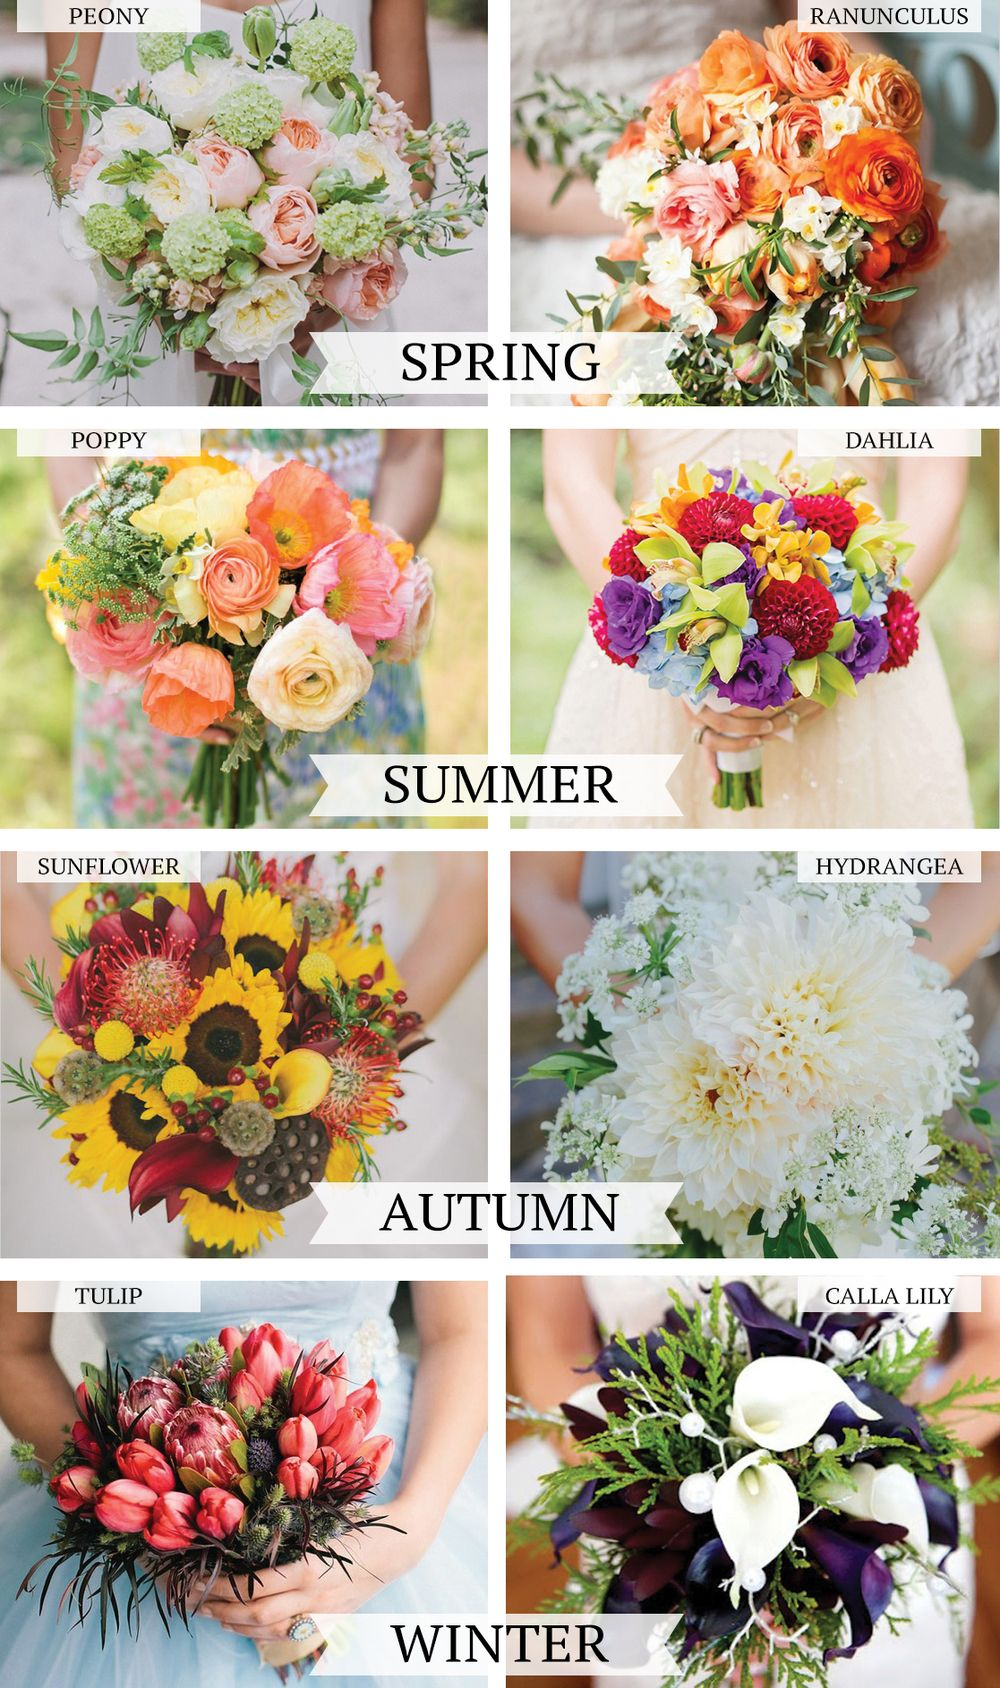 Wedding flowers by season balloons flowers gifts pinterest wedding flowers by season junglespirit Image collections